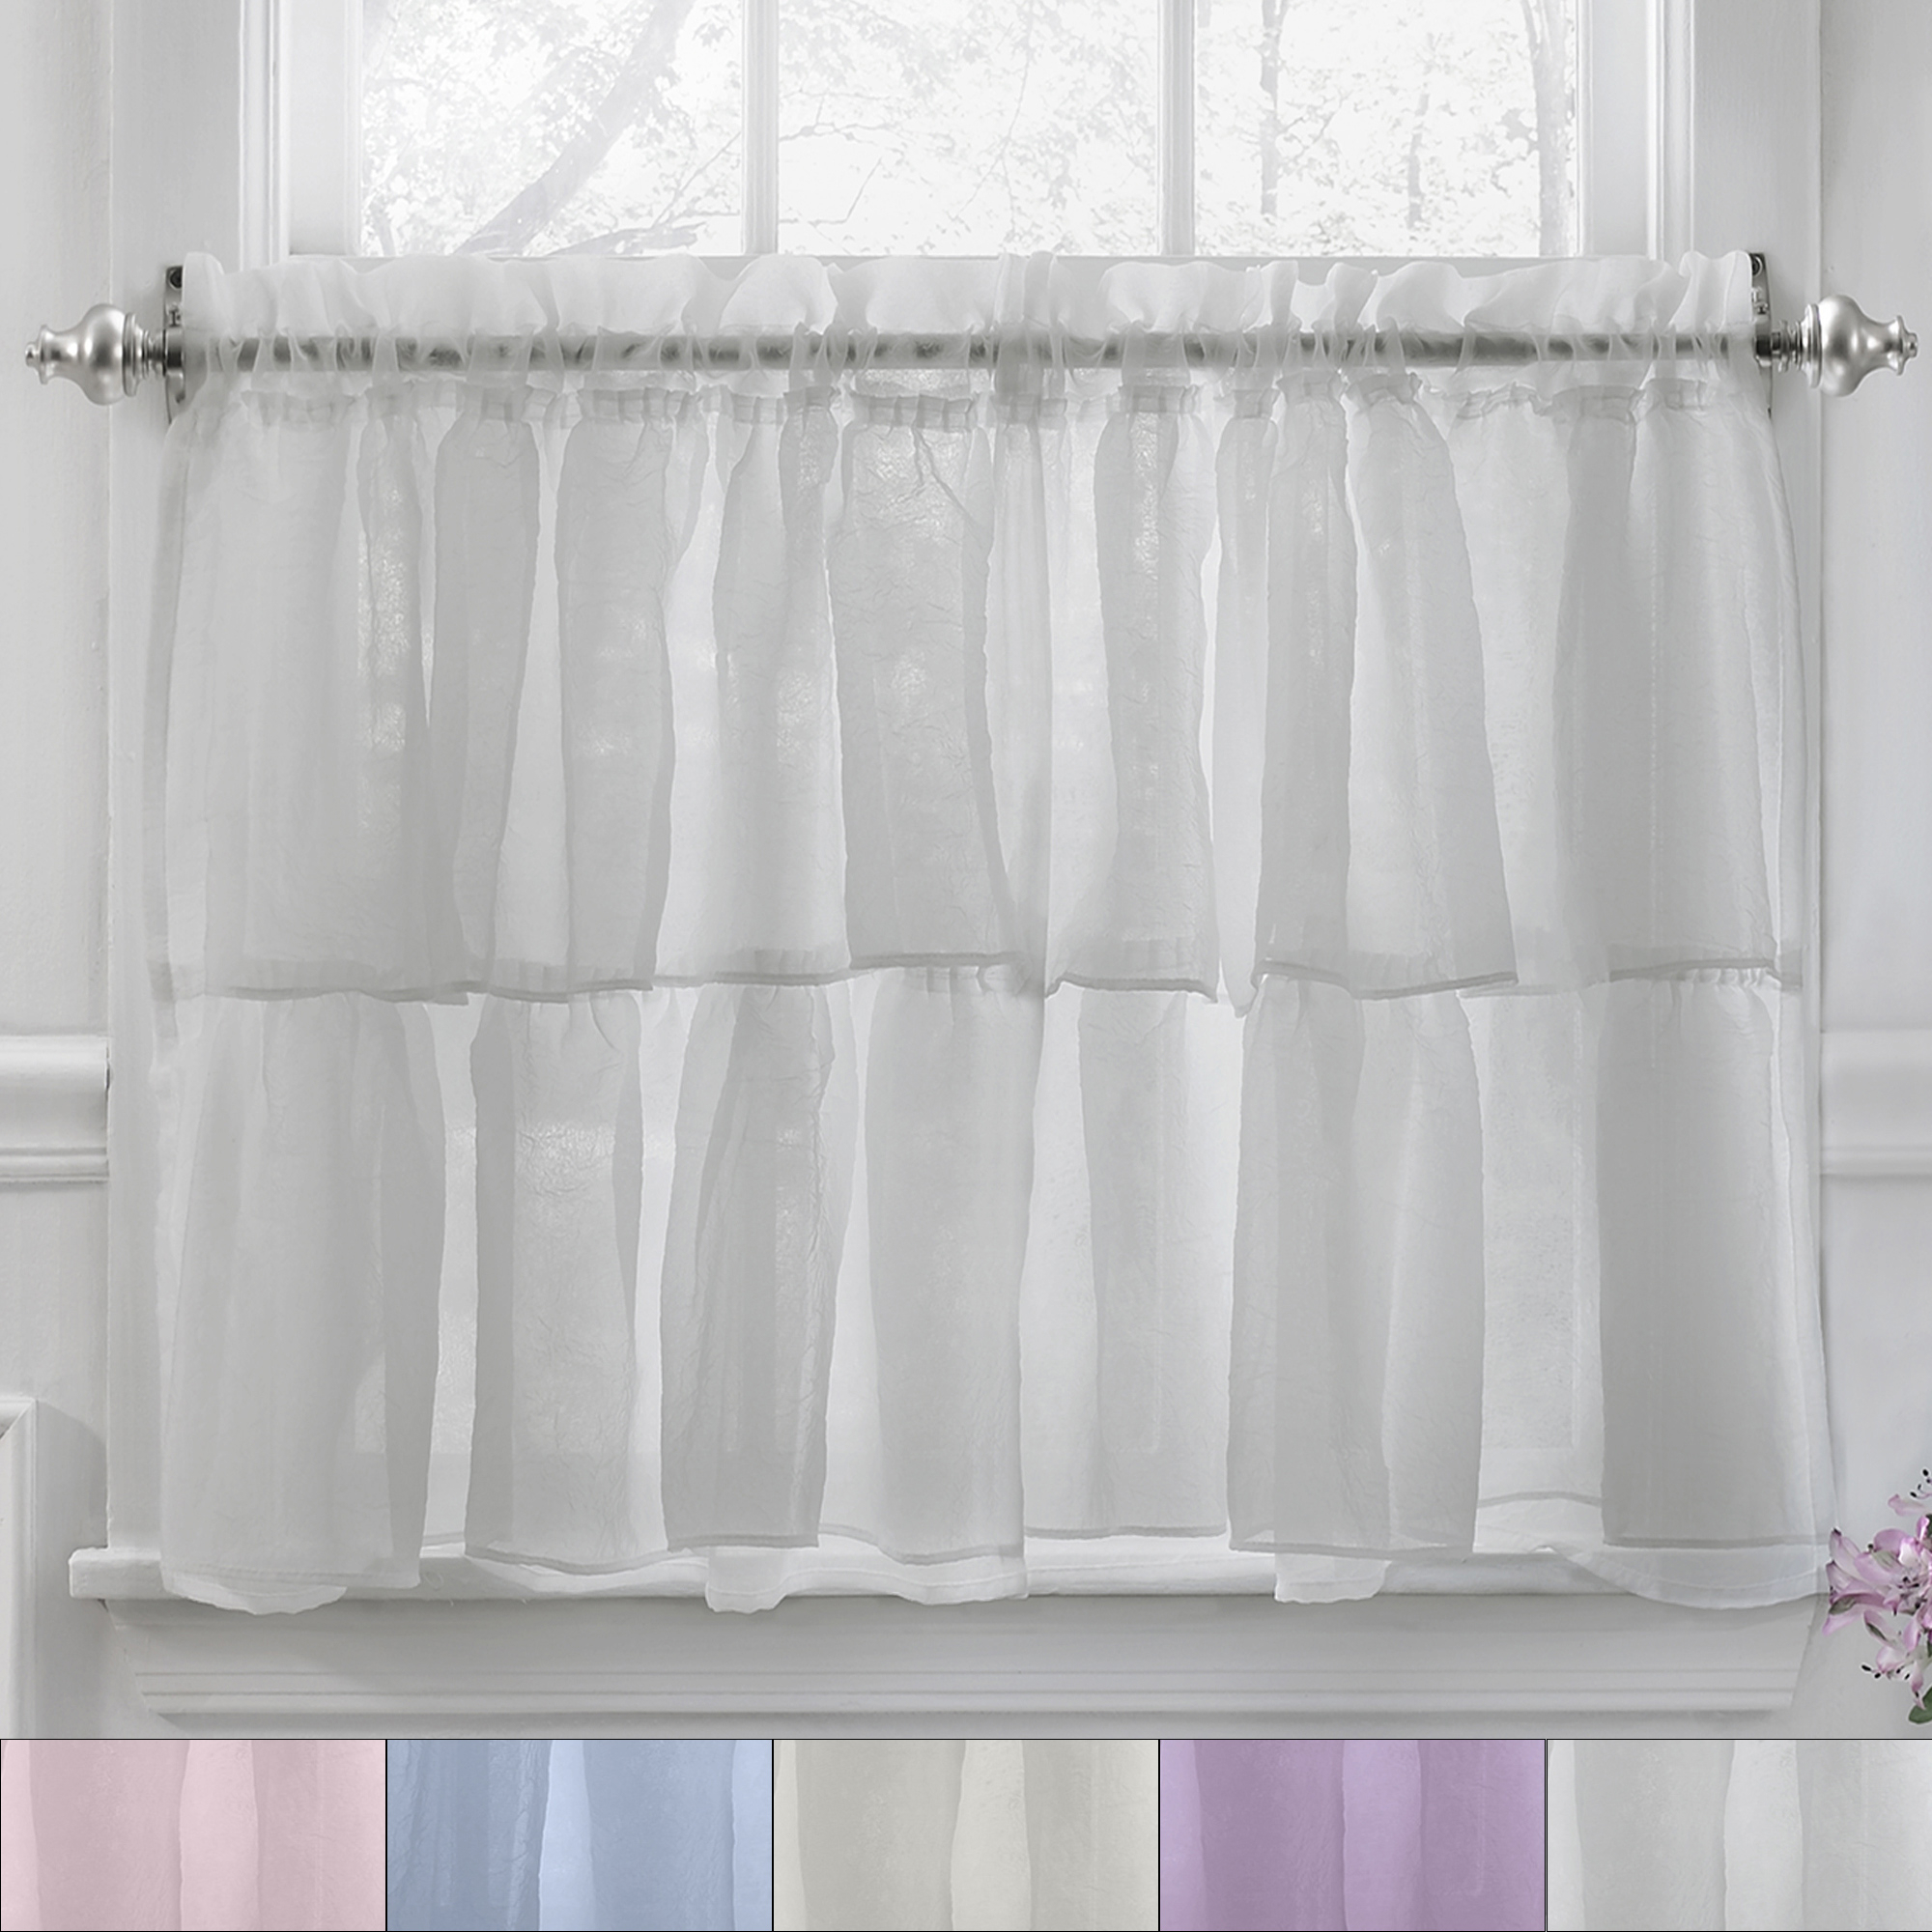 "Sheer Voile Ruffled Tier Window Curtain Panels Intended For Widely Used Details About Gypsy Crushed Voile Ruffle Kitchen Window Curtain 36"" Tier Pair (View 13 of 20)"